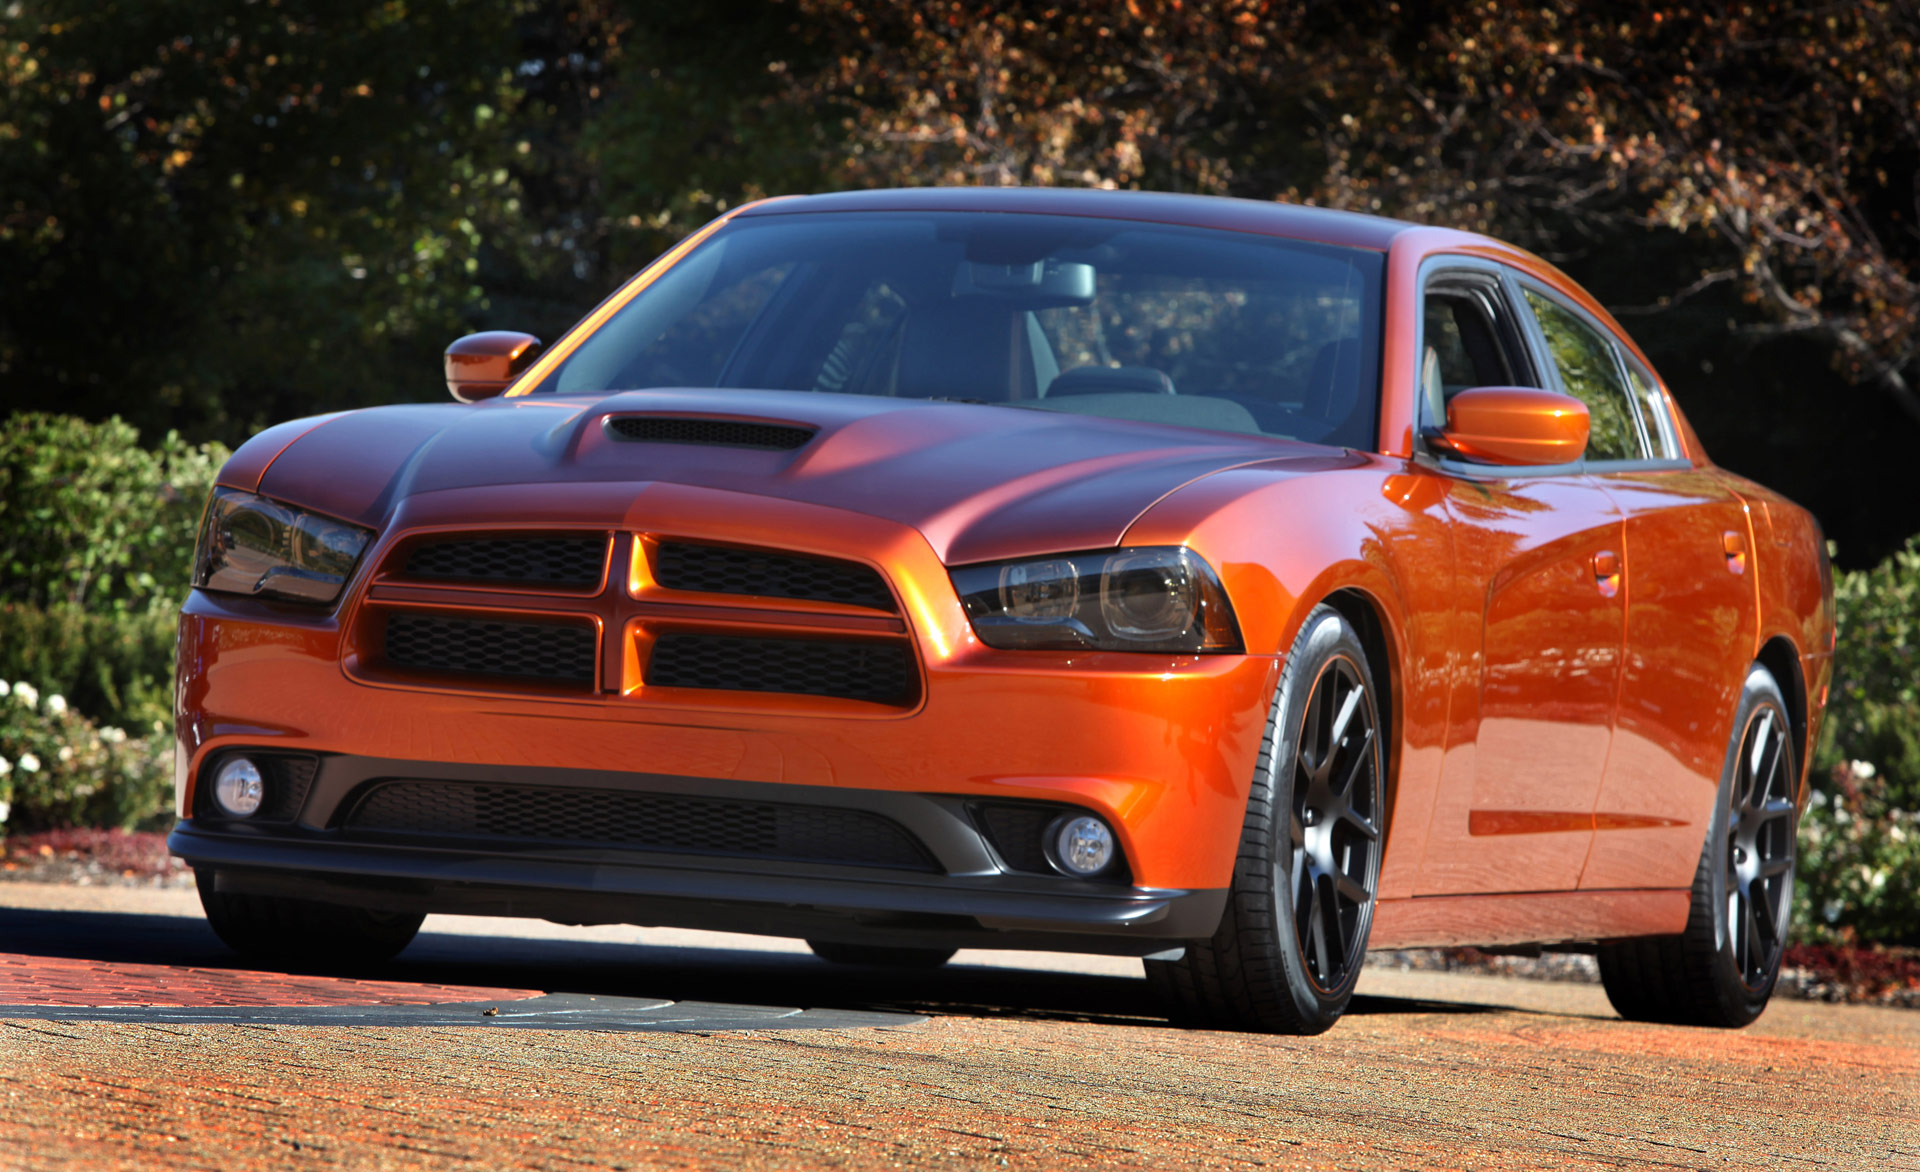 2012 Dodge Charger Juiced News and Information